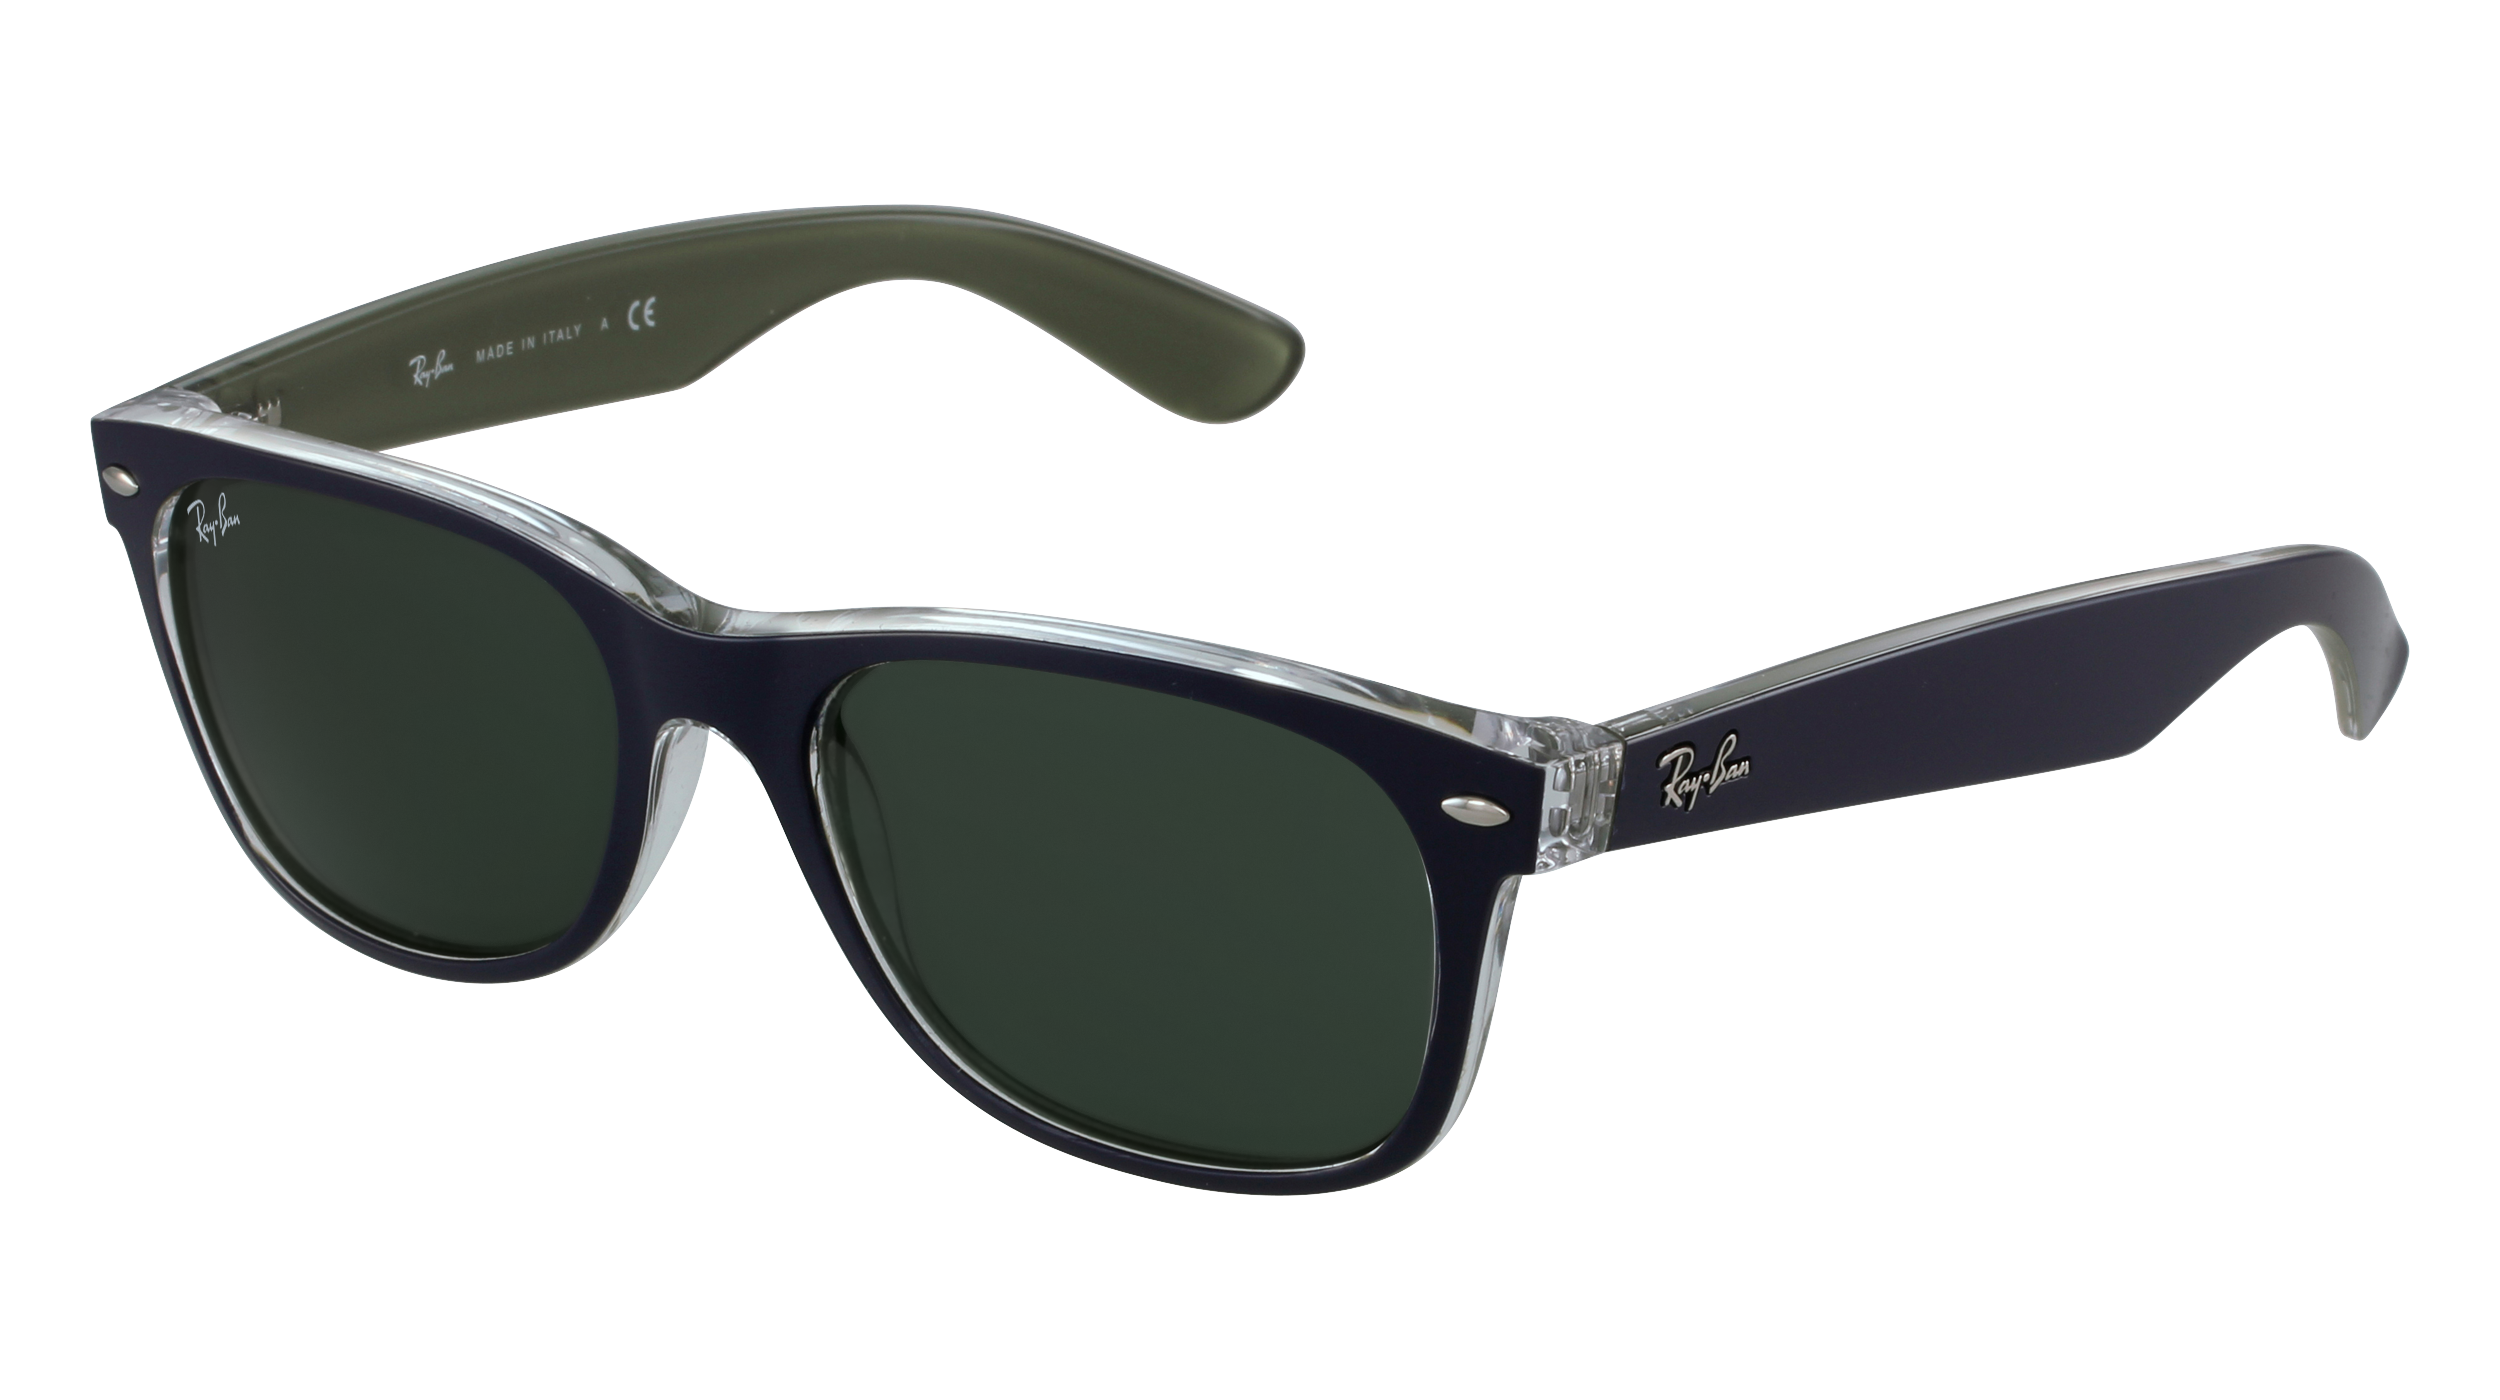 Ray-Ban RB2132-S-6188-55-18-145